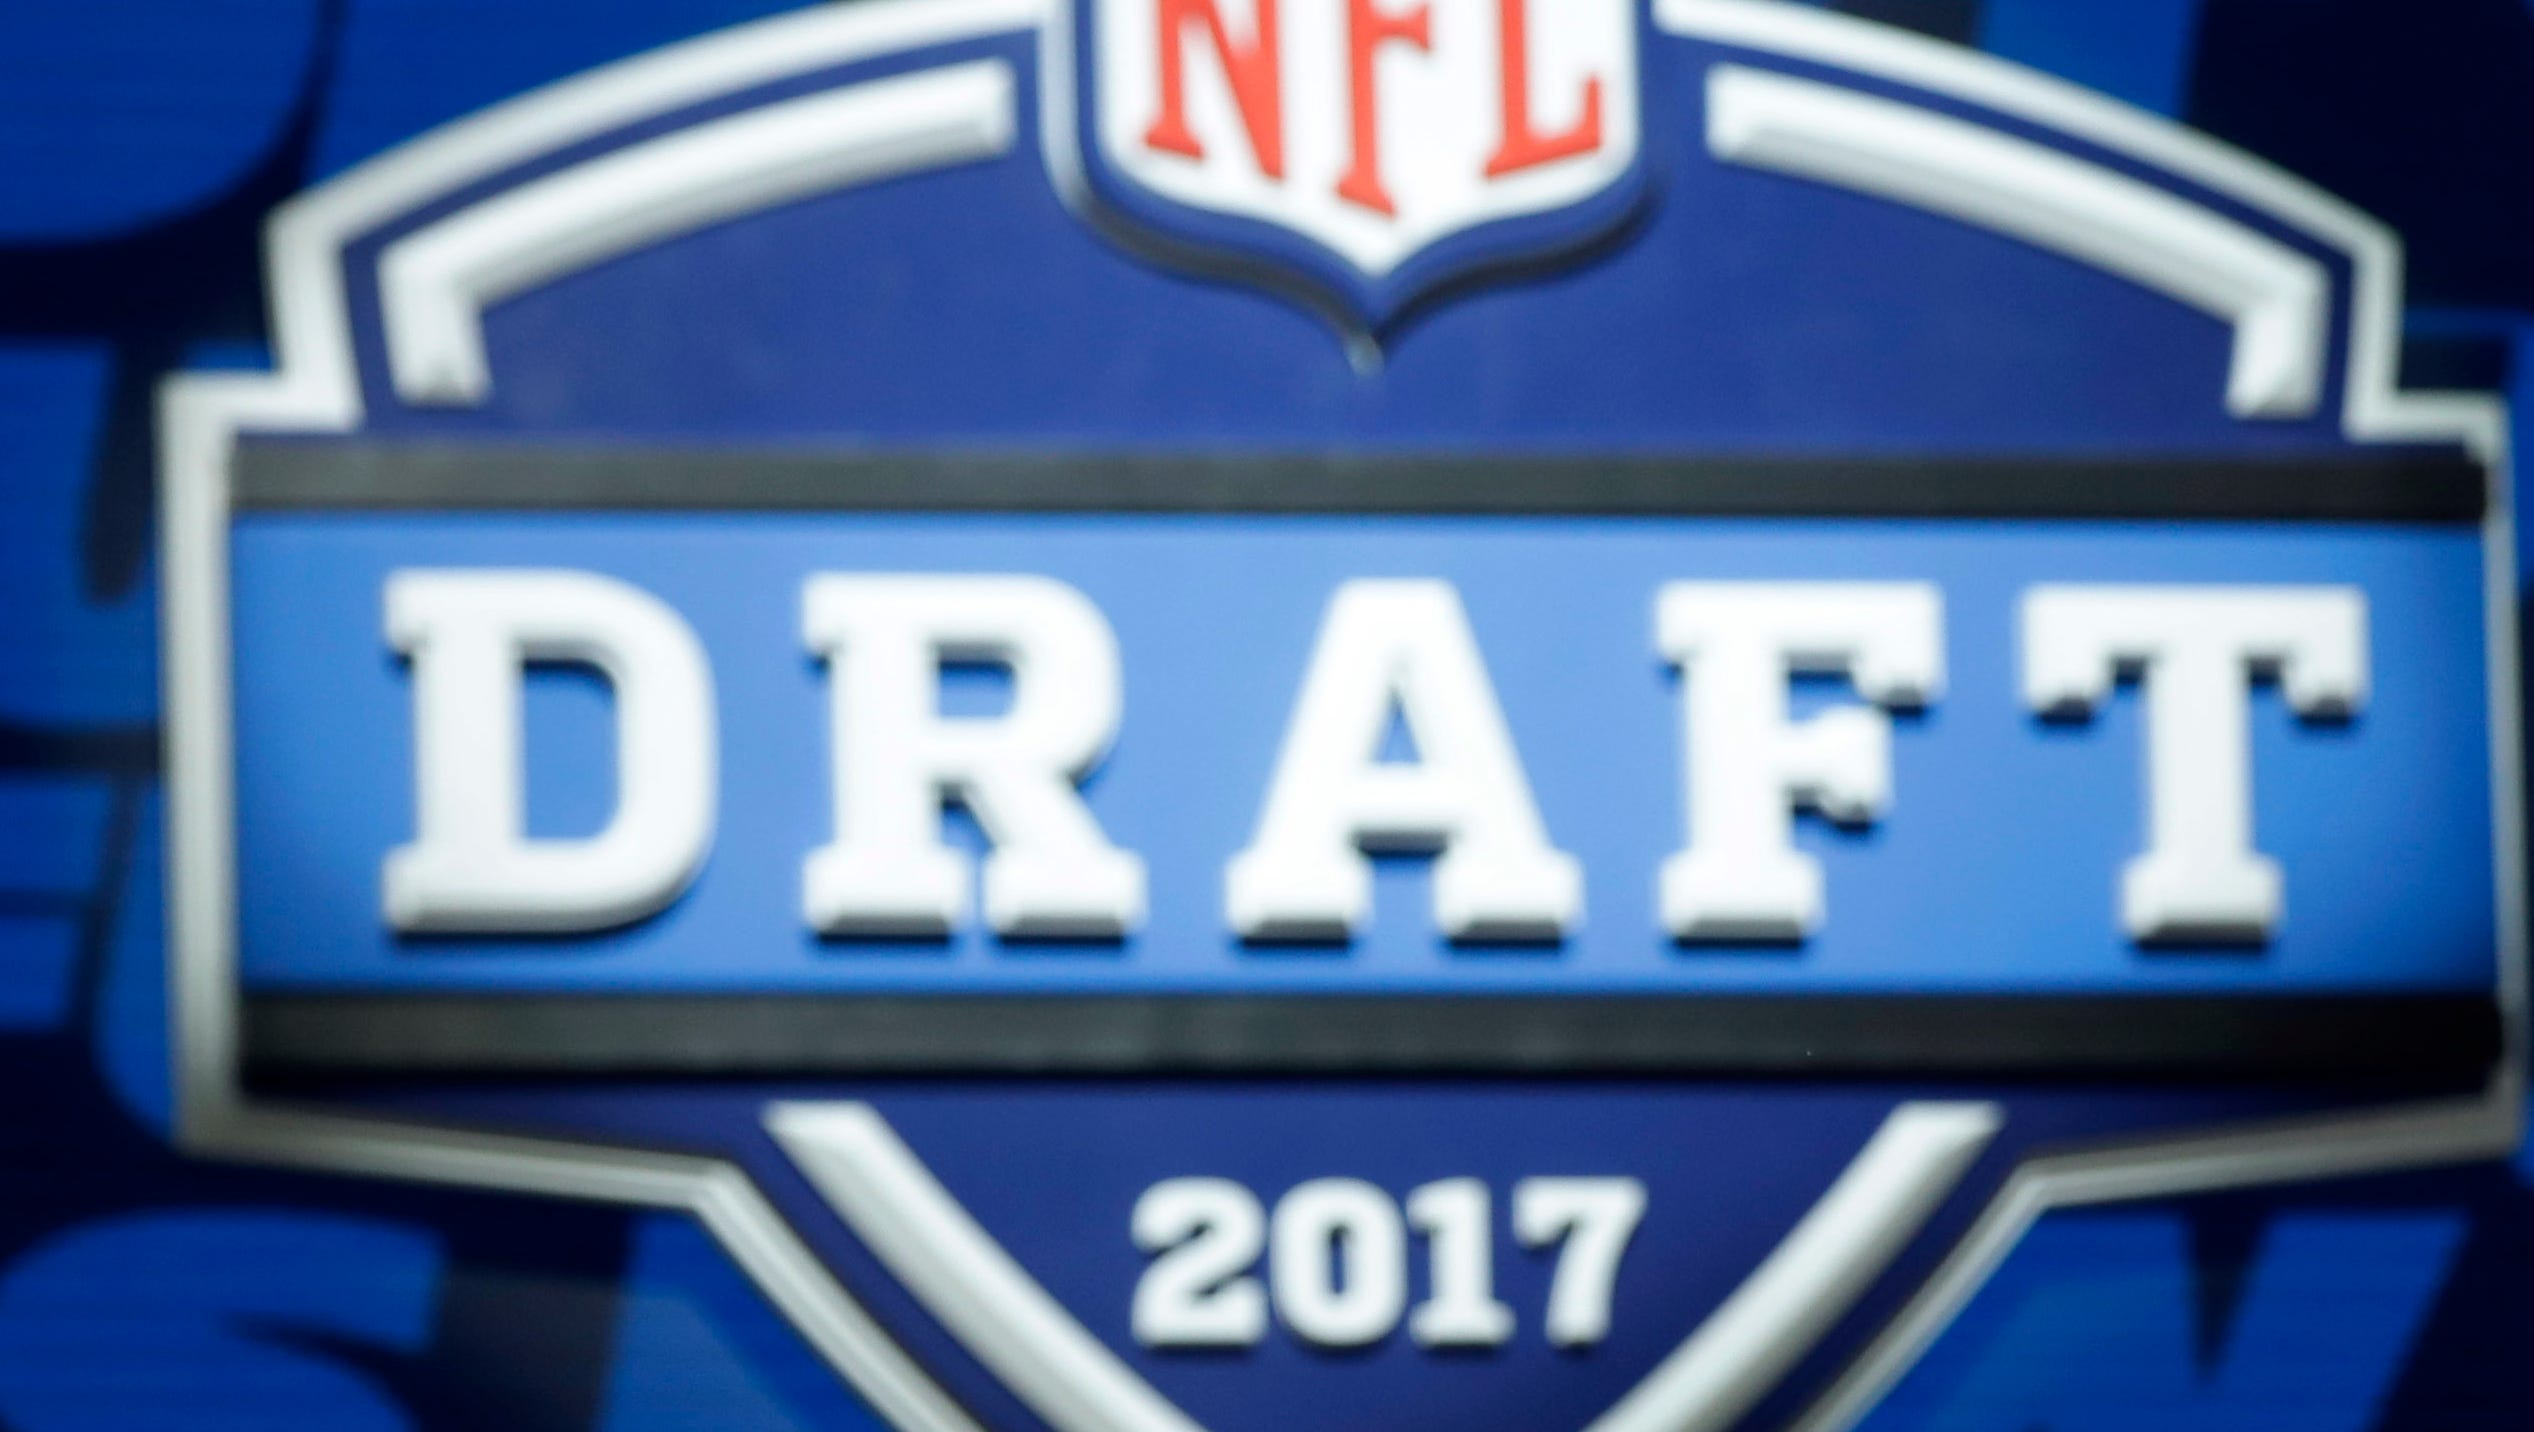 Fox To Air Nfl Draft Along With Espn Nfl Network